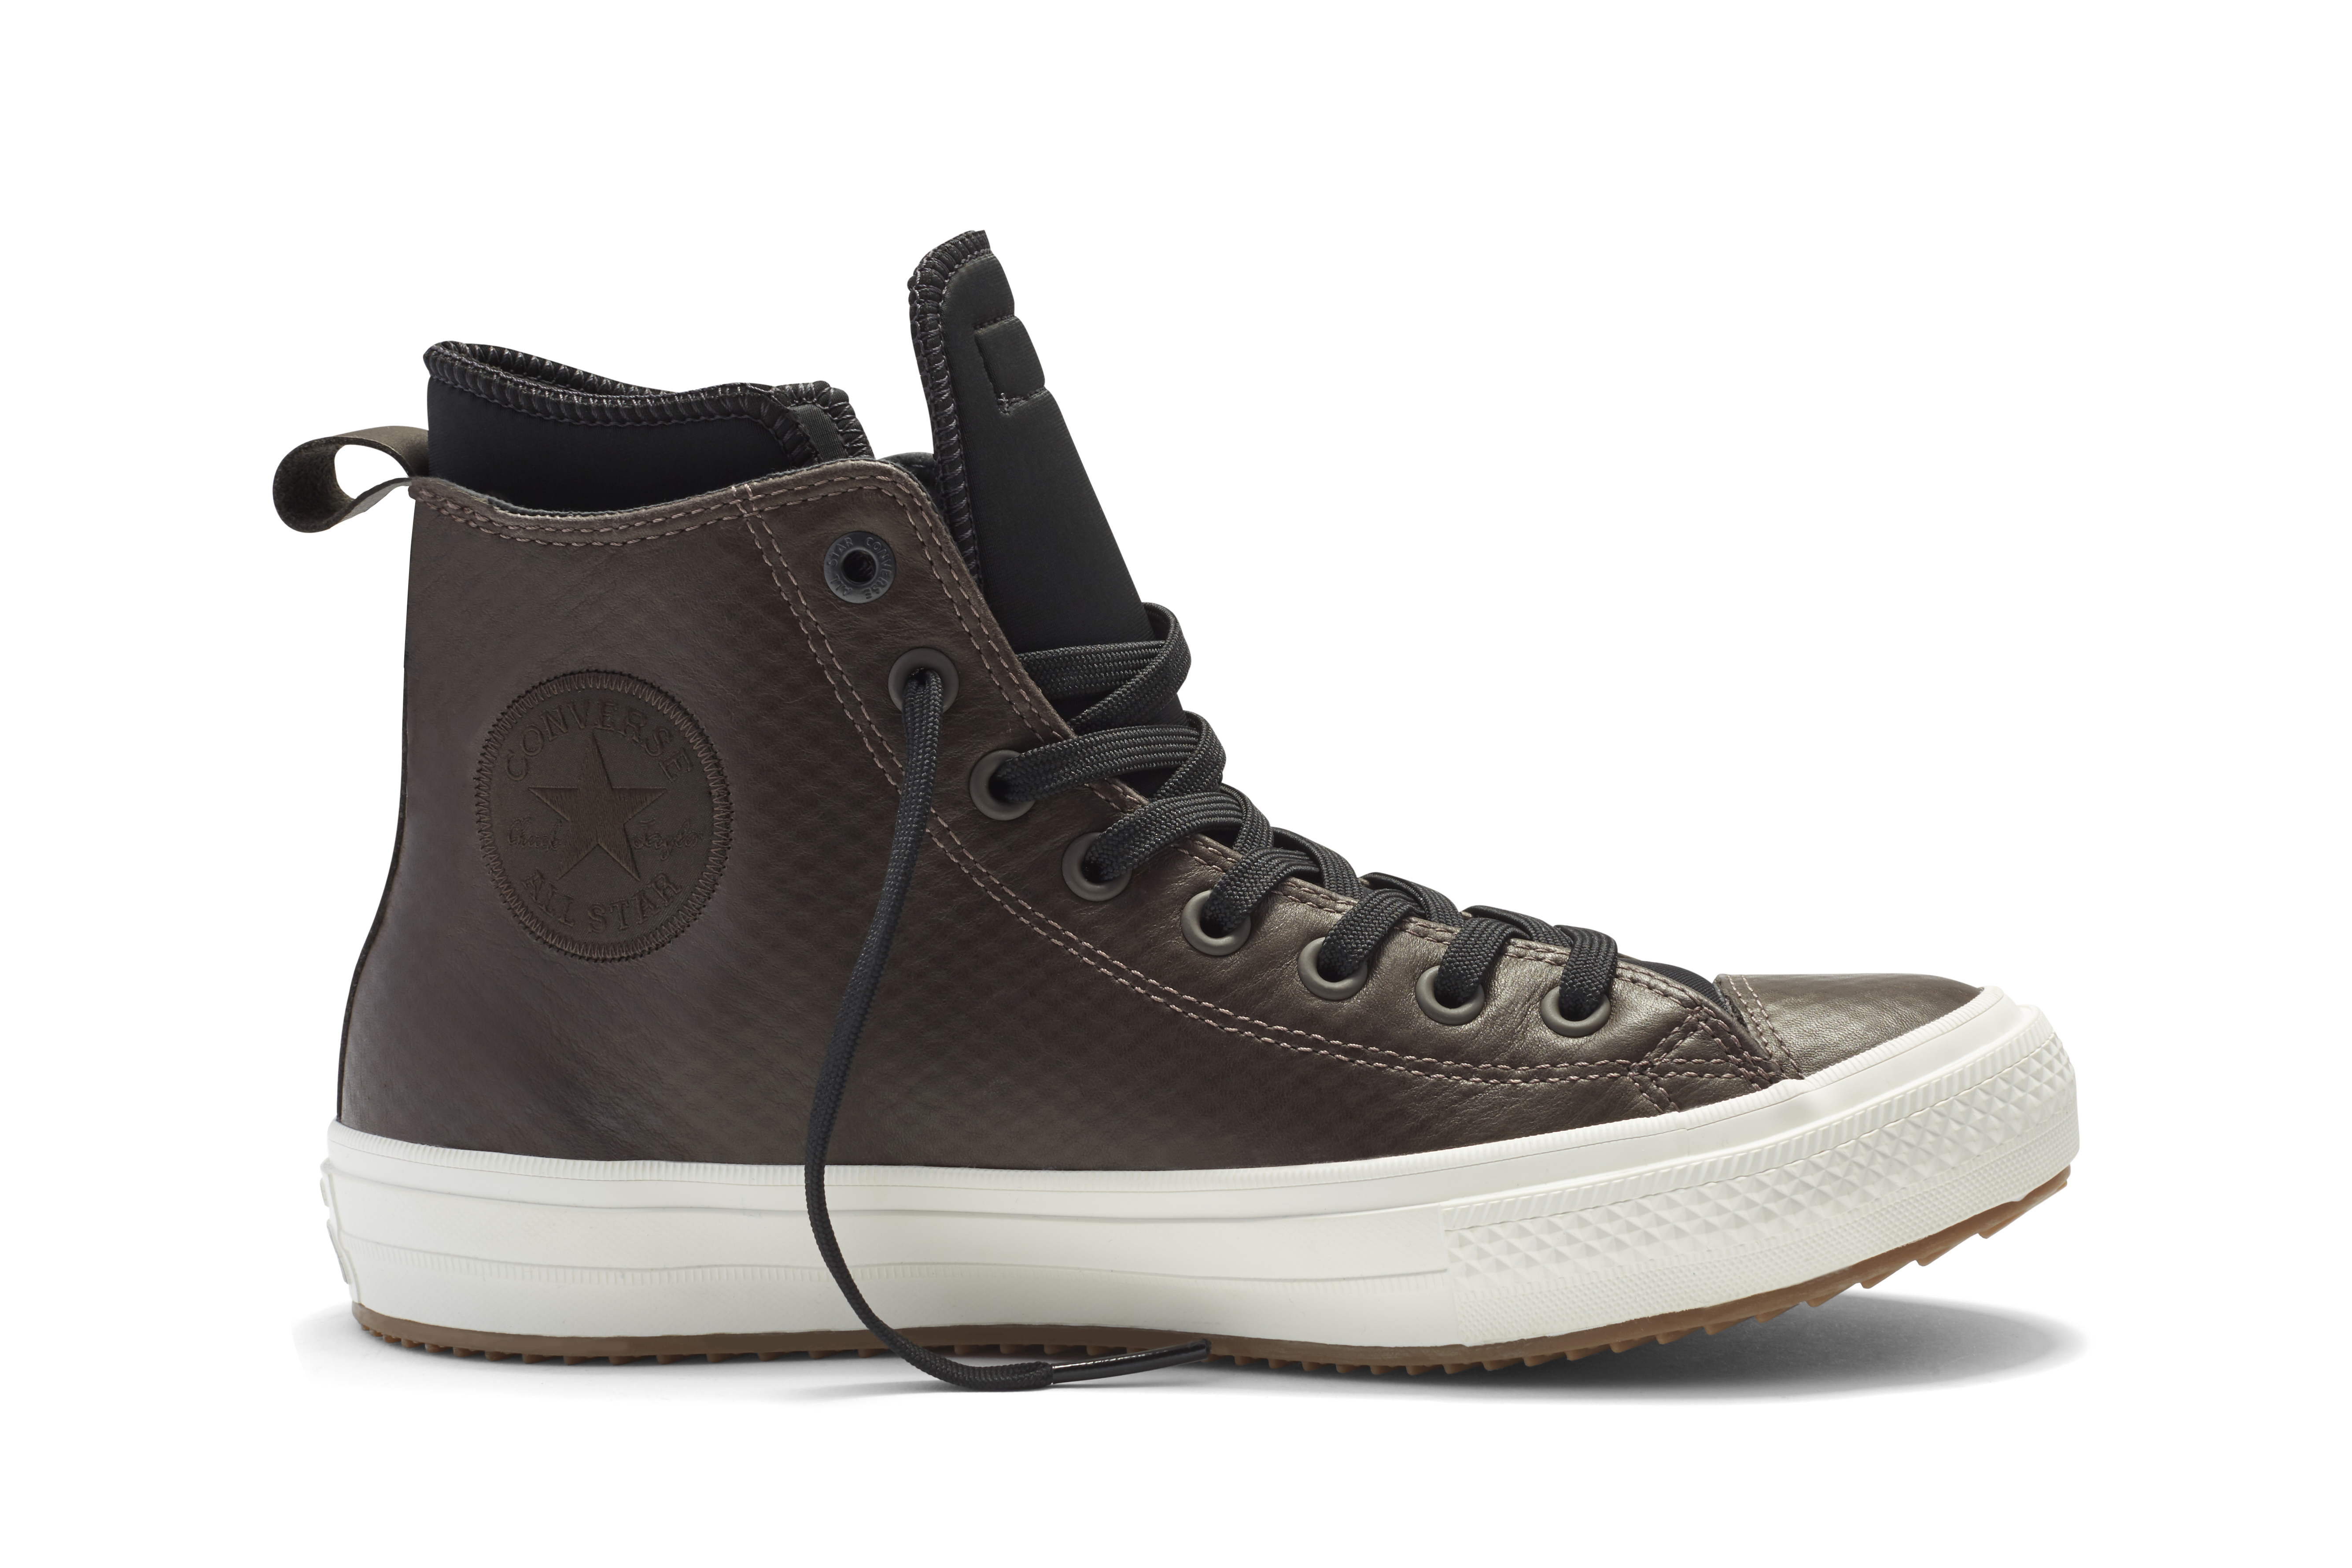 buy converse boots